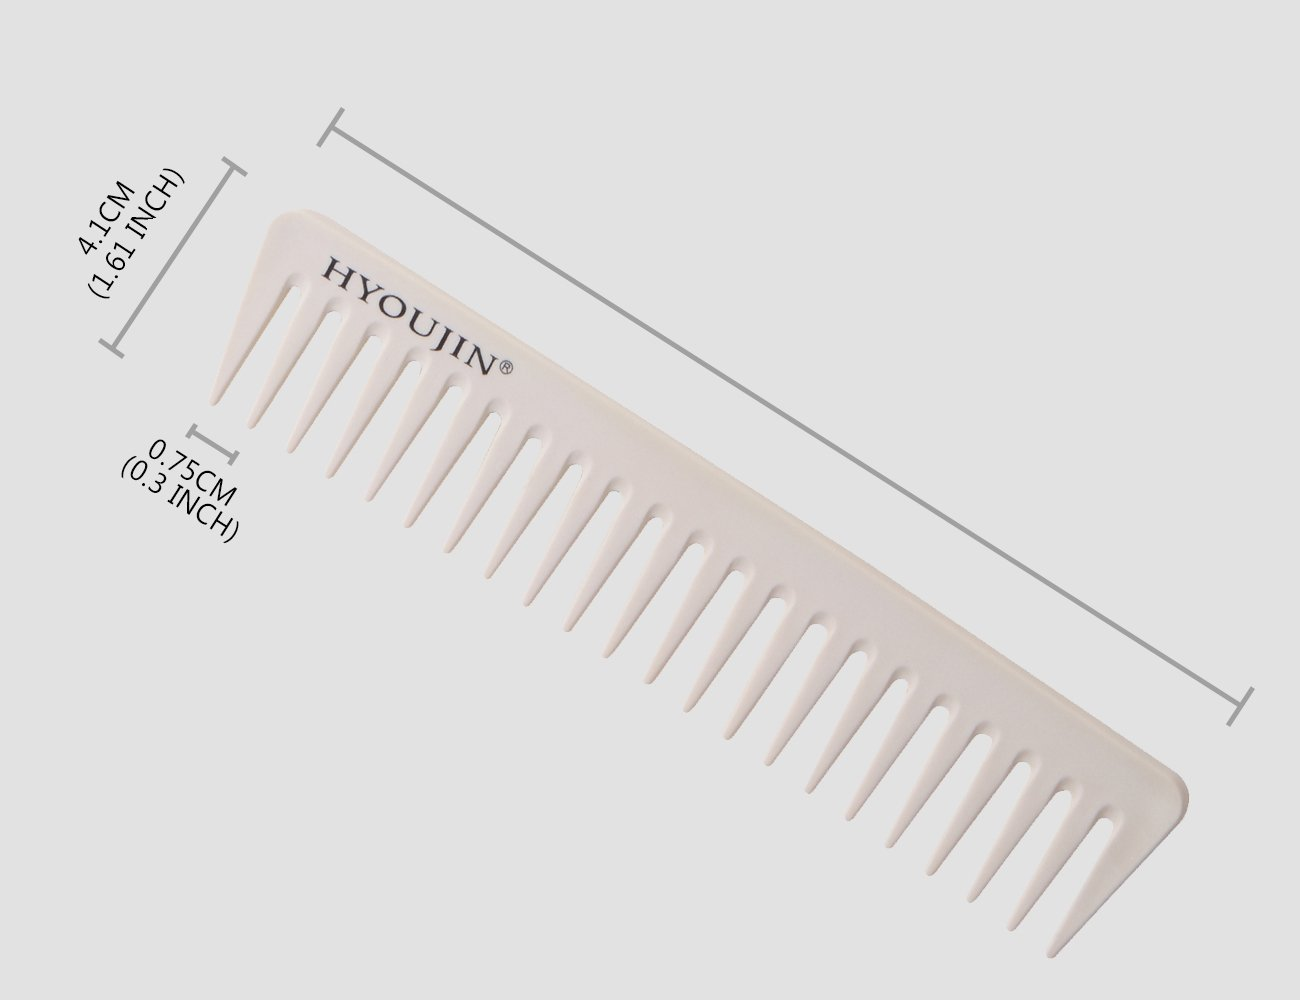 HYOUJIN 6in1 7ps Ivory White Professional Hair Styling Comb Set kit Beard Comb kit set & Heat-resistance w/Cutting Comb + Wide tooth comb + Pintail comb + 2 Hair Clips & Felt Pouch by HYOUJIN (Image #6)